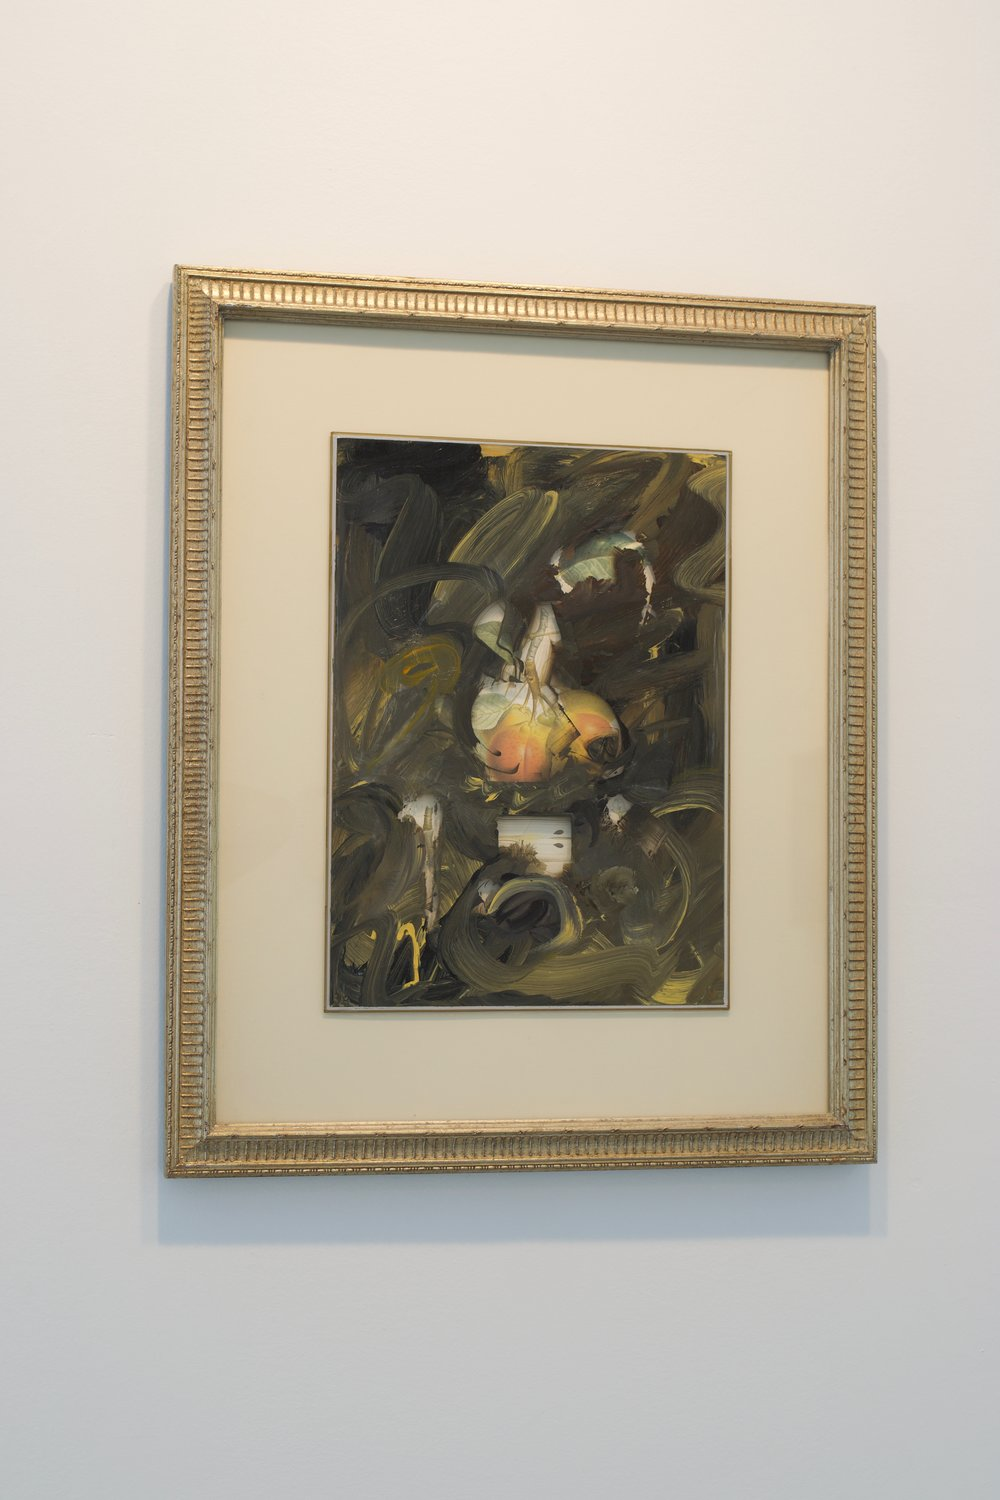 Mark Van Wagner, 2007. Acrylic on glass over botanical print, 22x18 in.